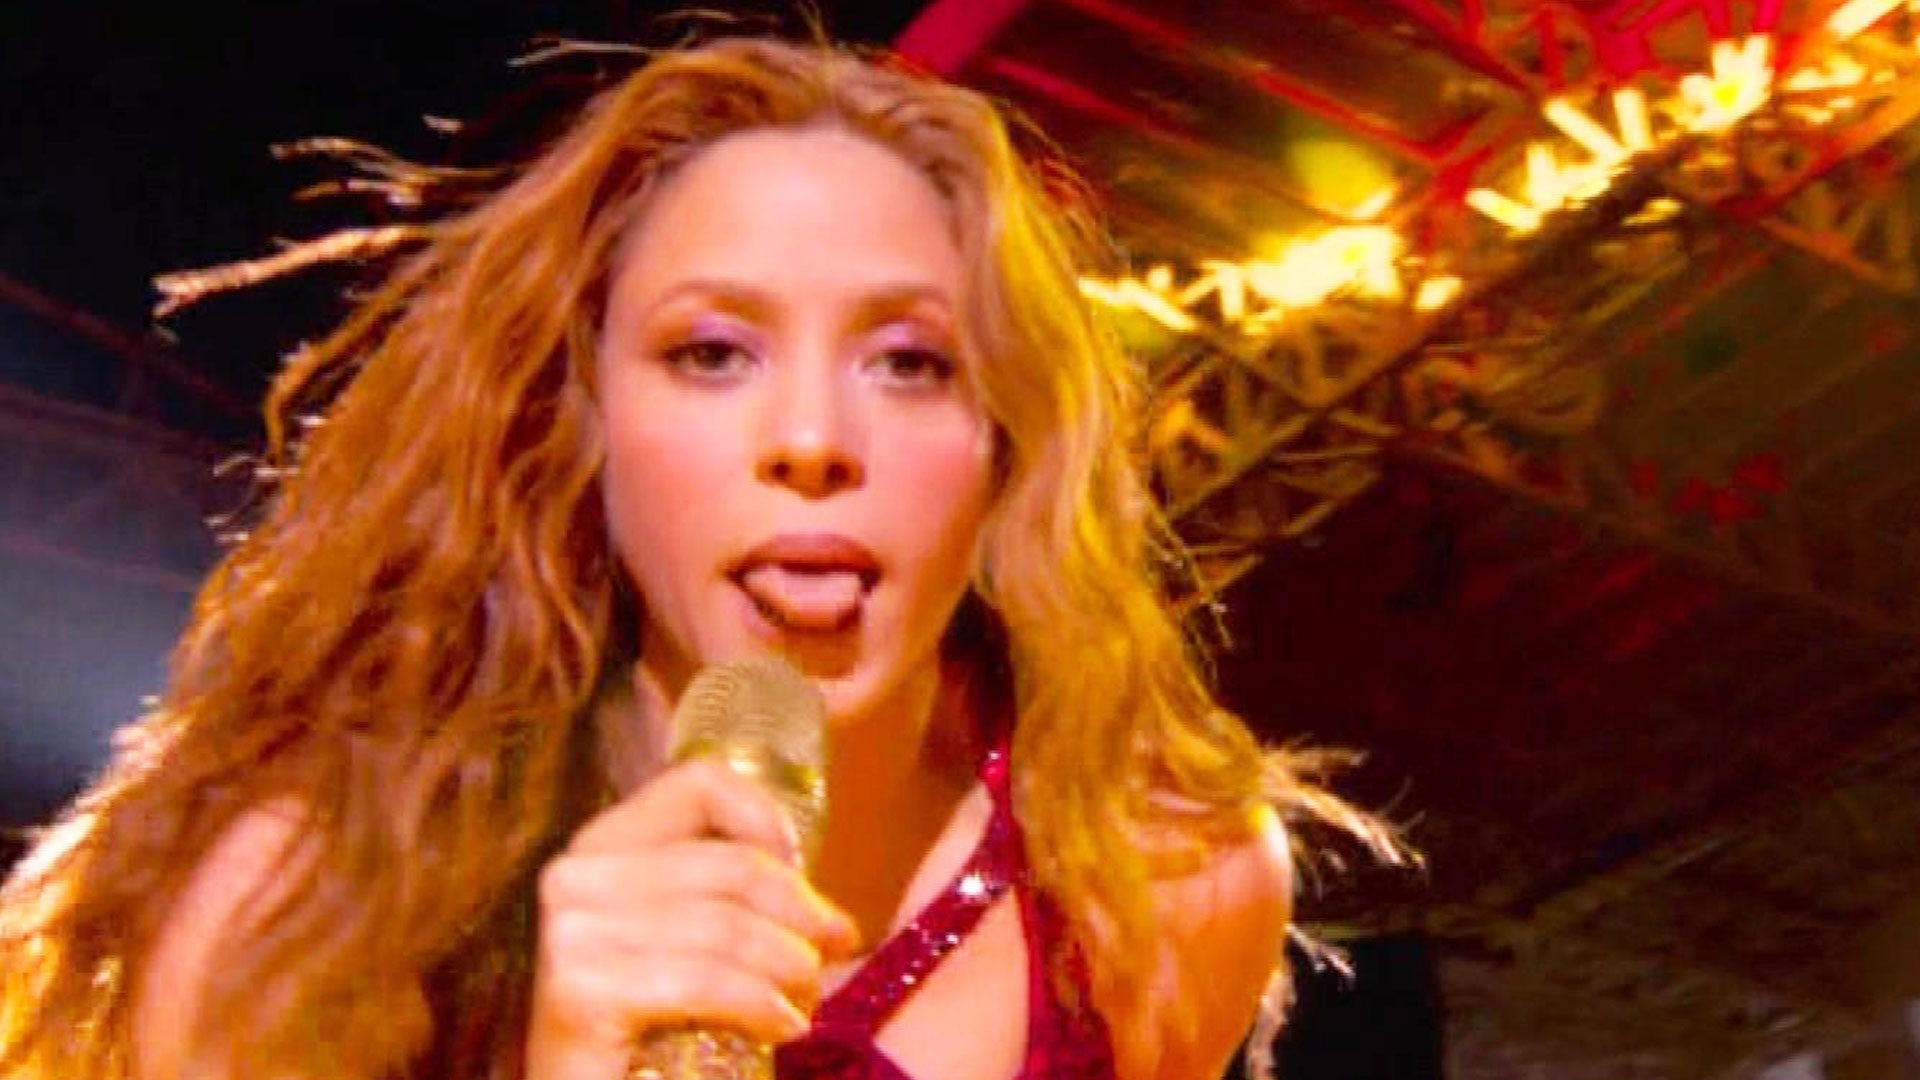 Shakira S Tongue Inspires Biggest Super Bowl Meme Here S The Meaning Behind It Entertainment Tonight